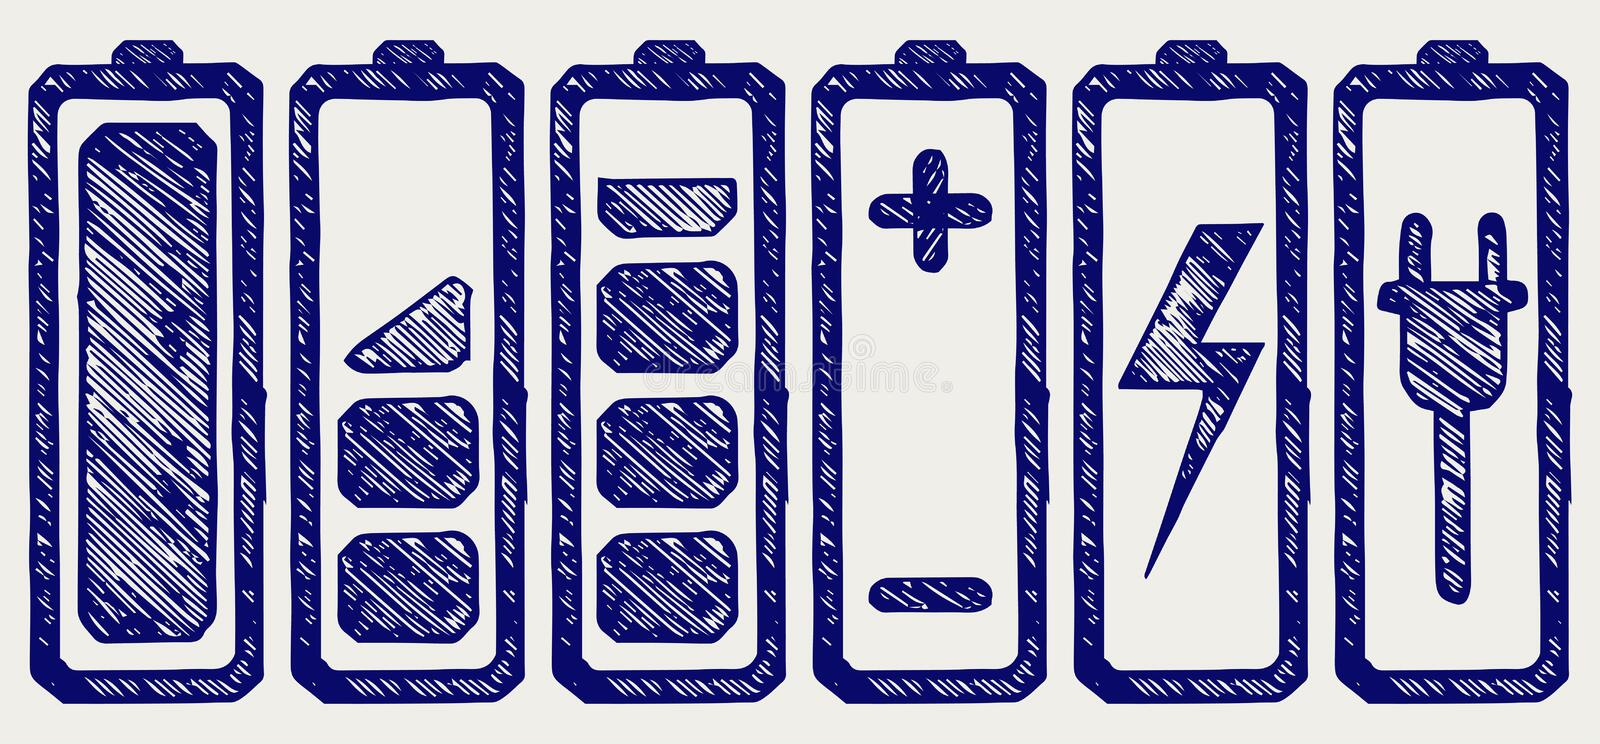 Battery charge level indicators. Doodle style vector illustration